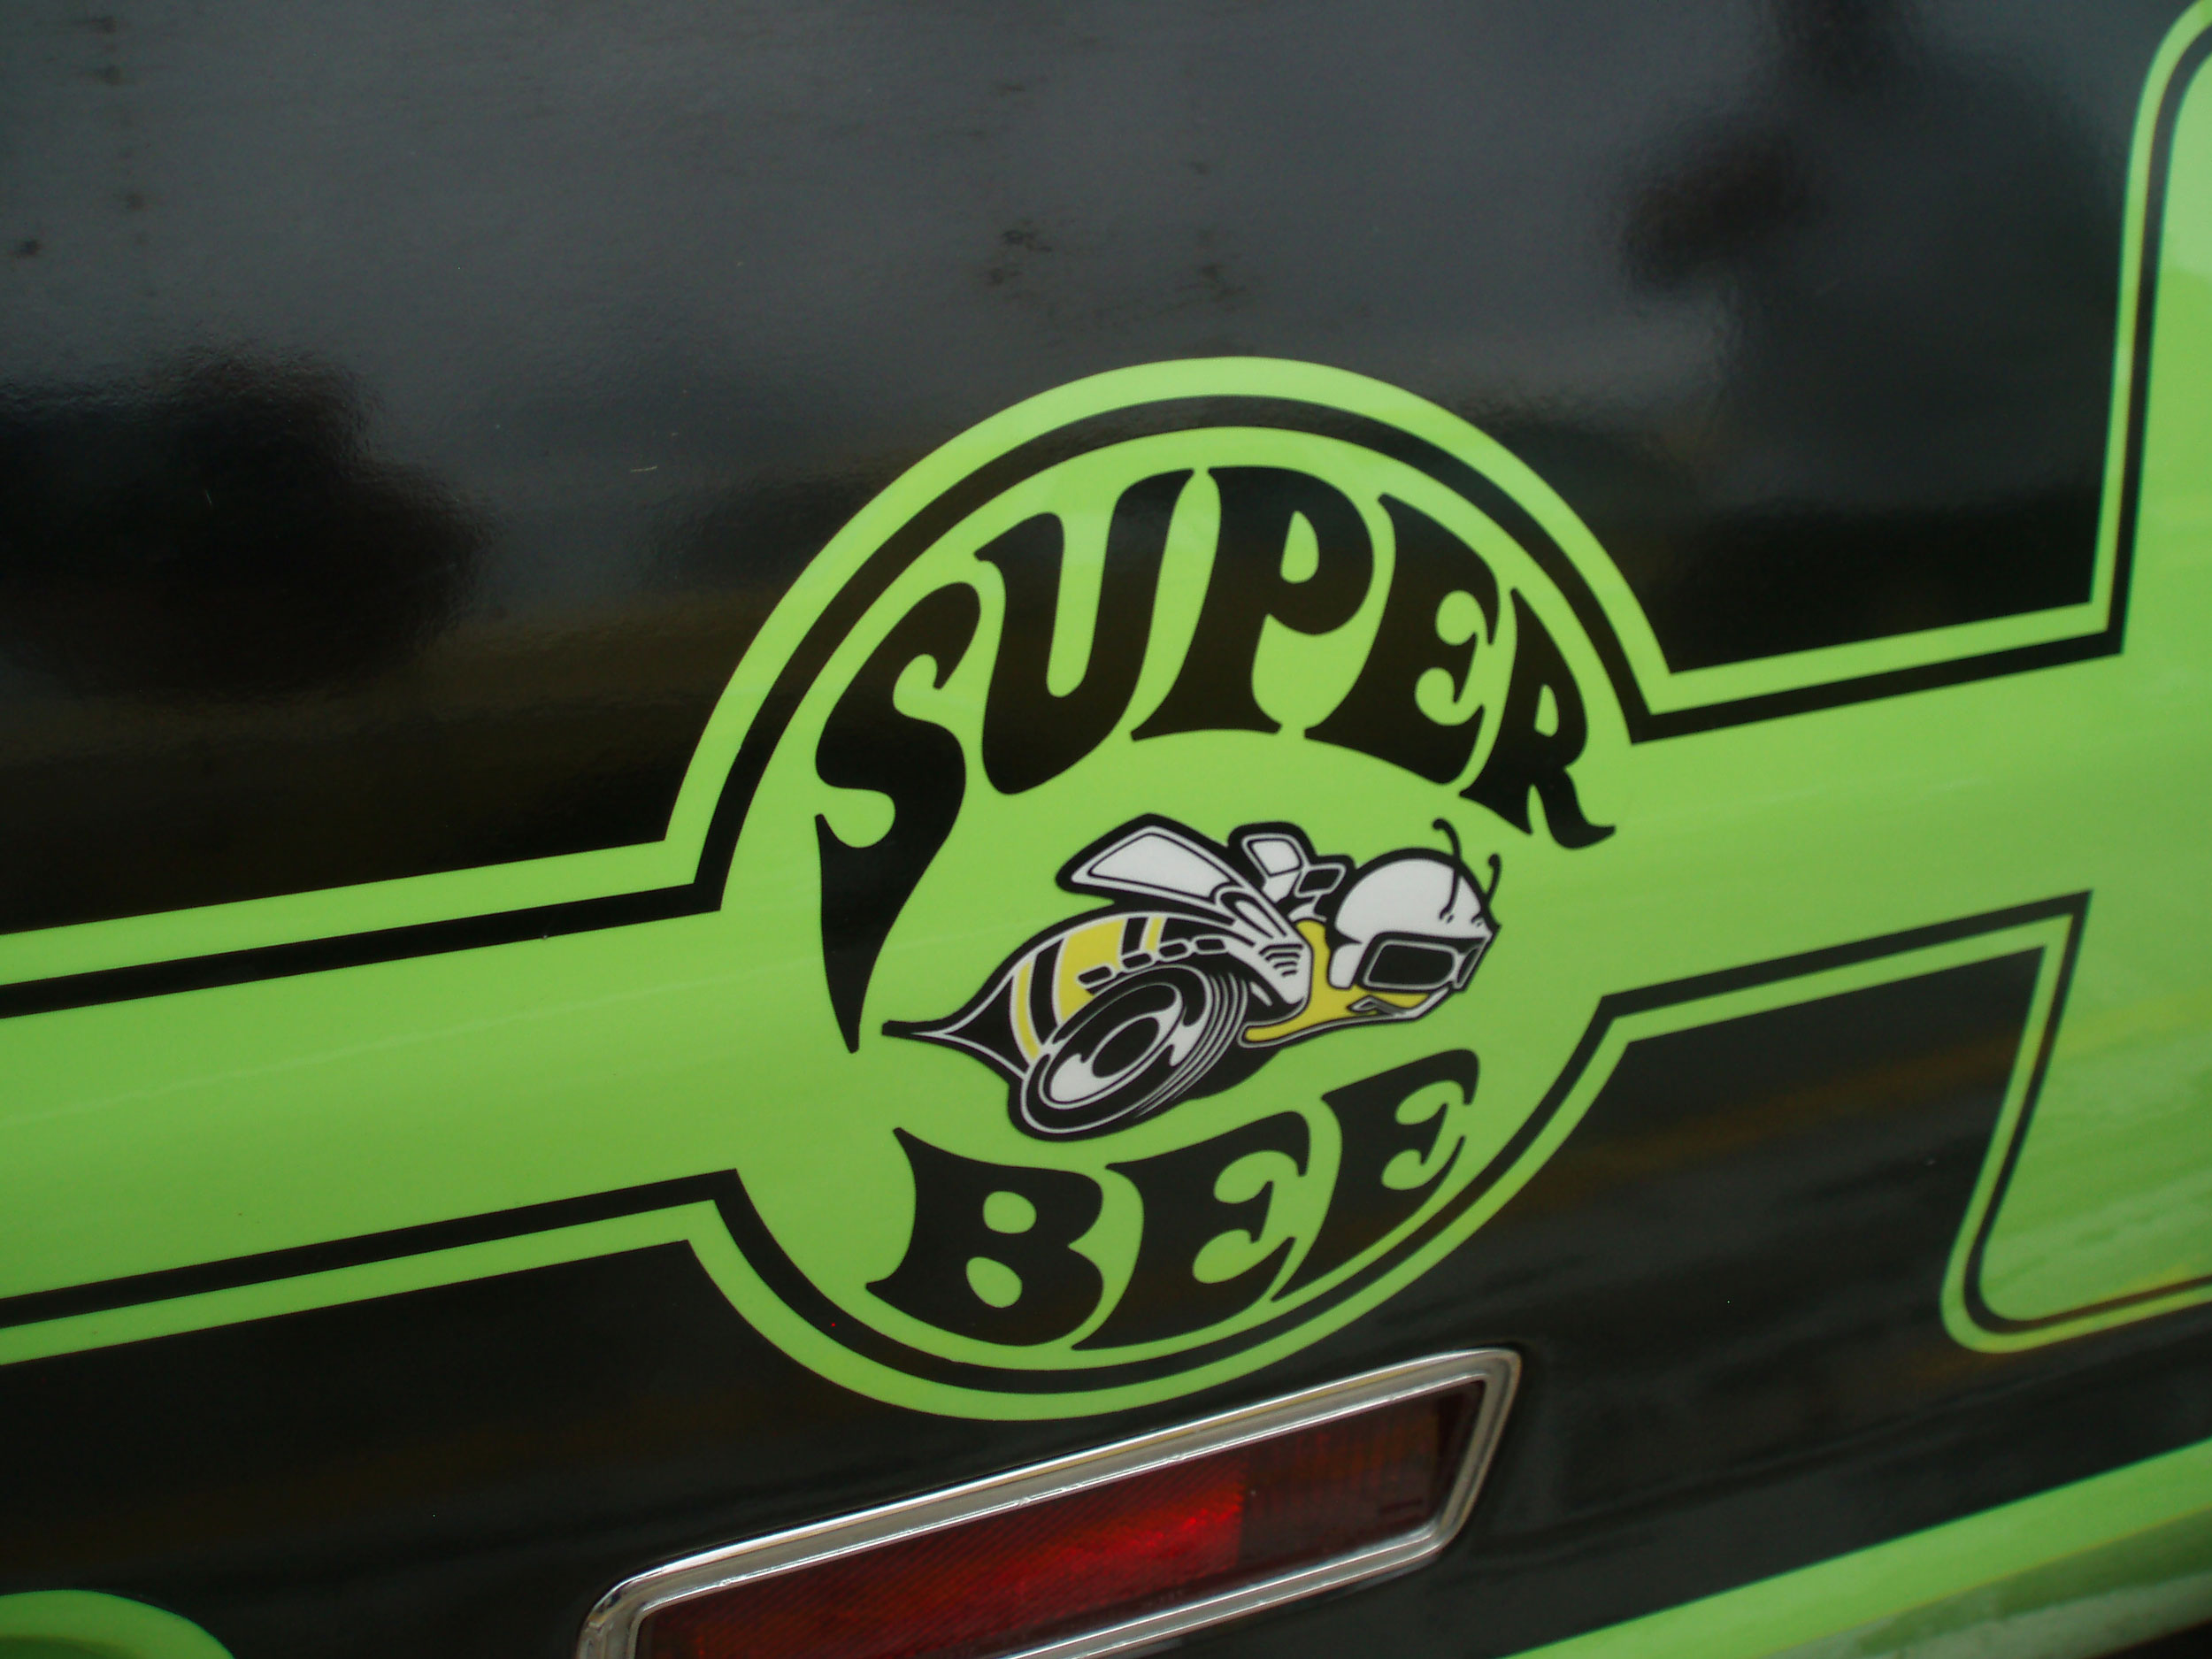 Dodge Super Bee logo